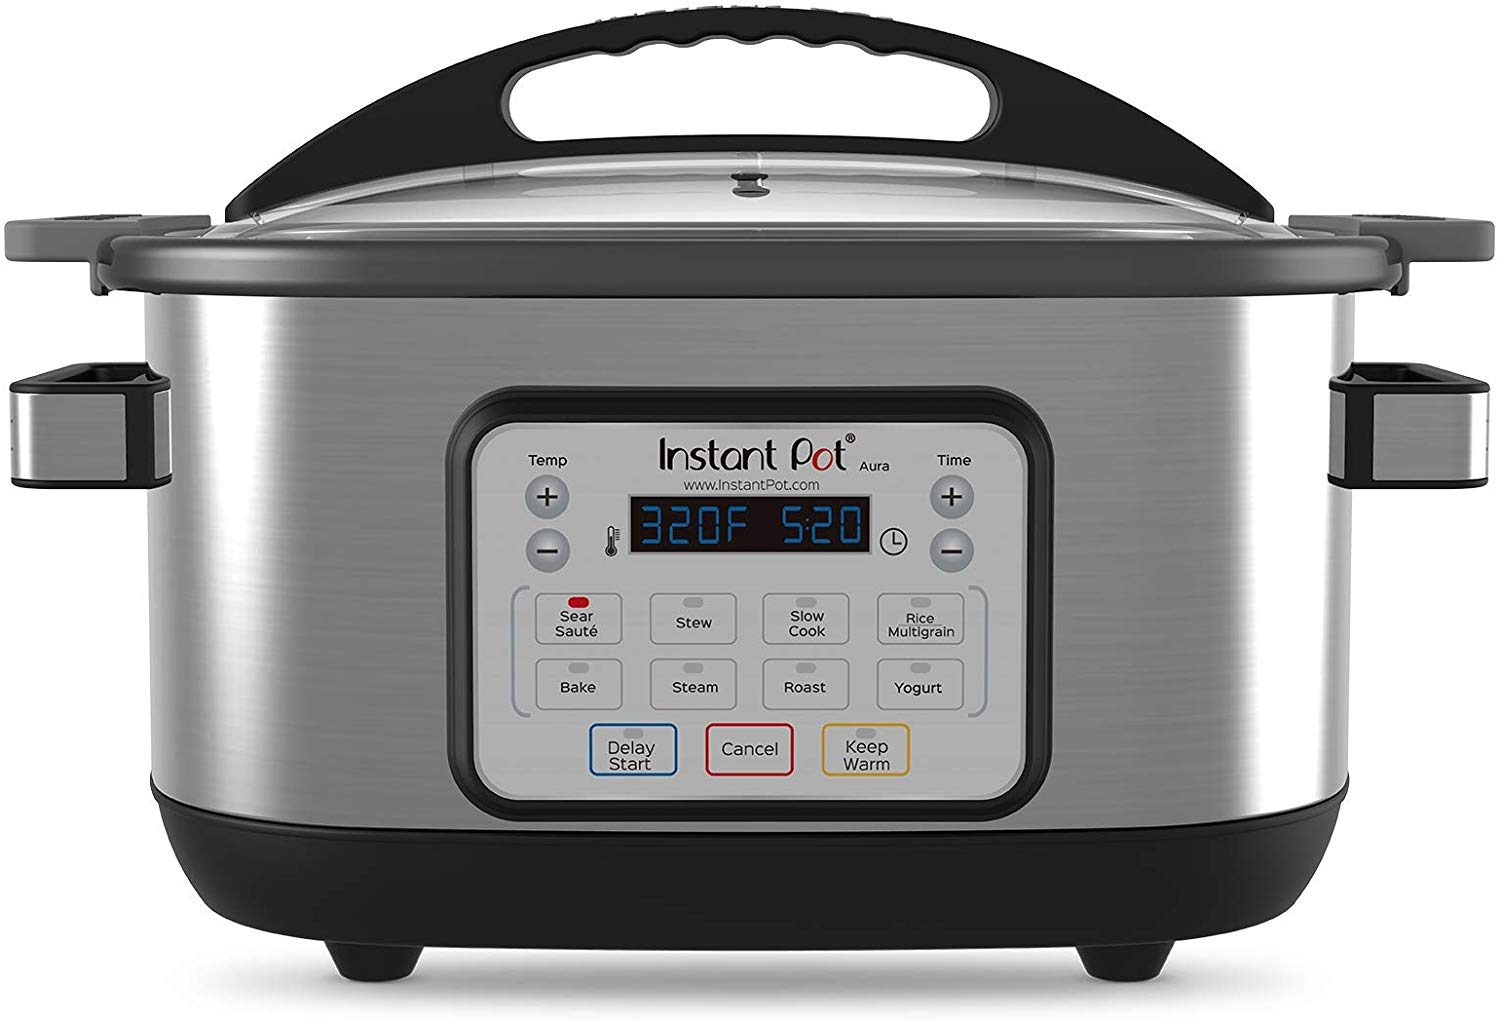 Amazon – Instant Pot 9-in-1 Multicooker Only $59.95 Was $129.95 + FREE Shipping